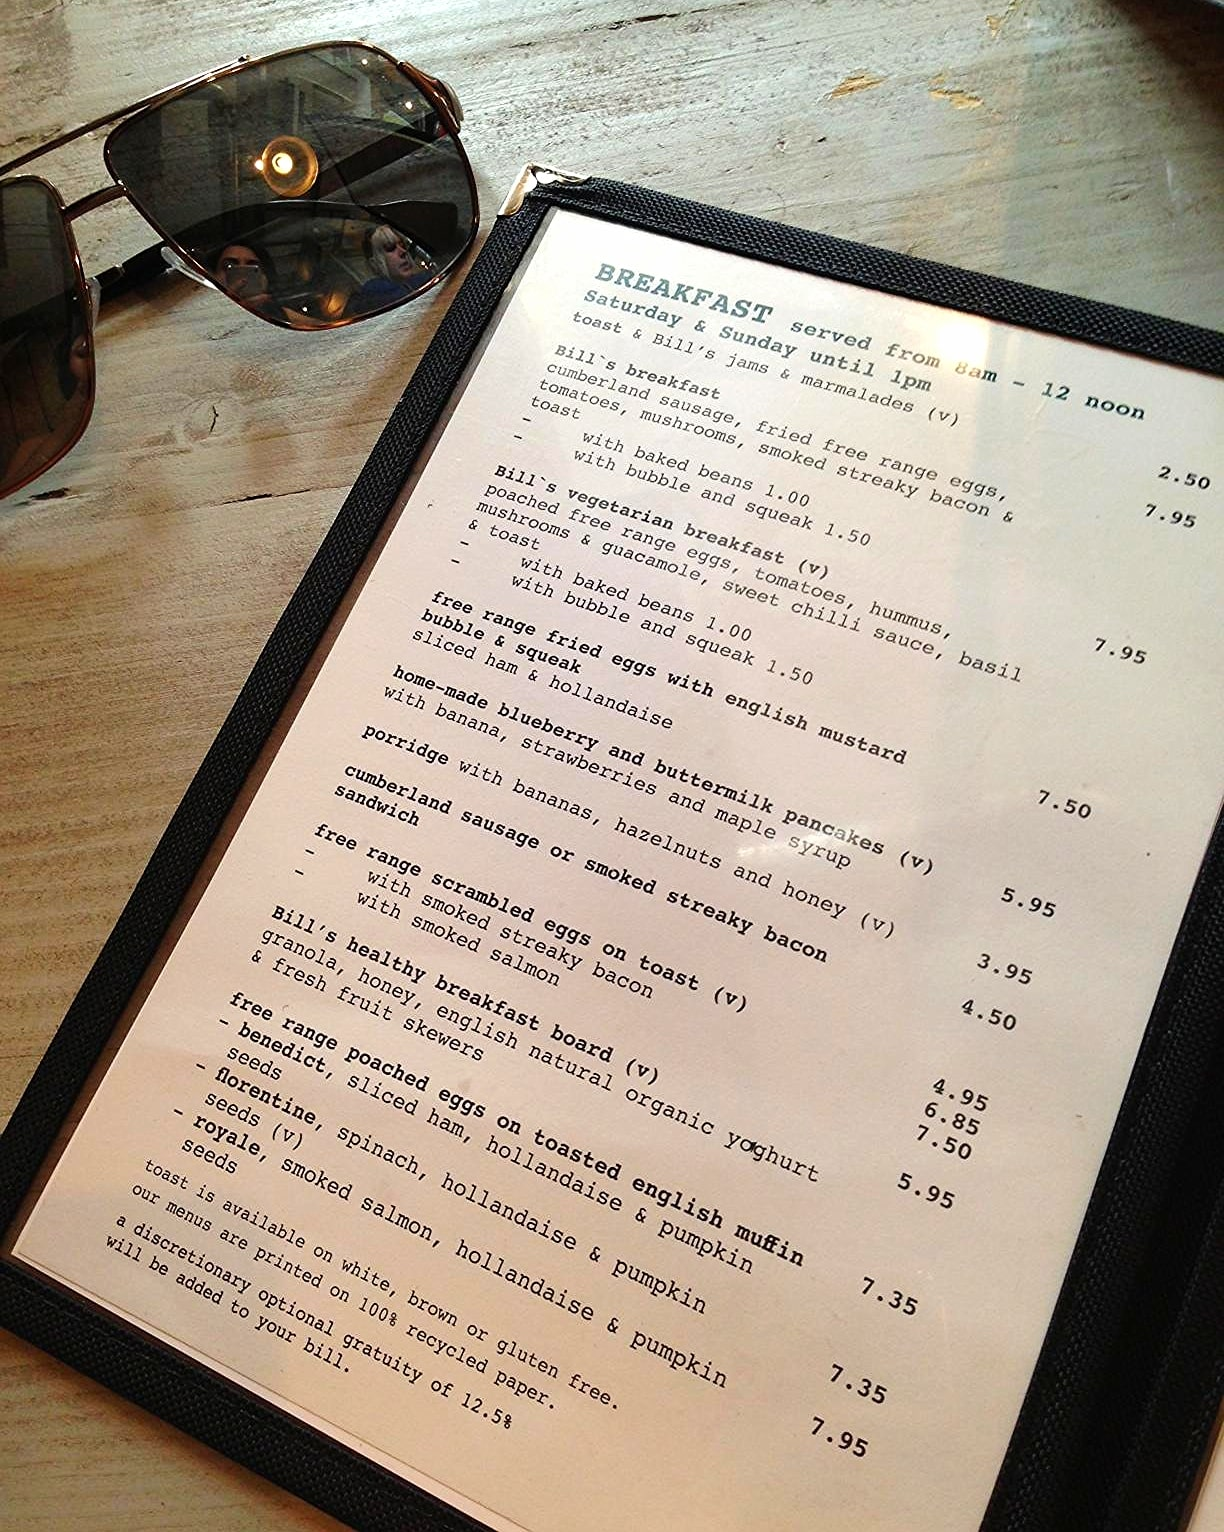 Bill's menu Hoxton Square London